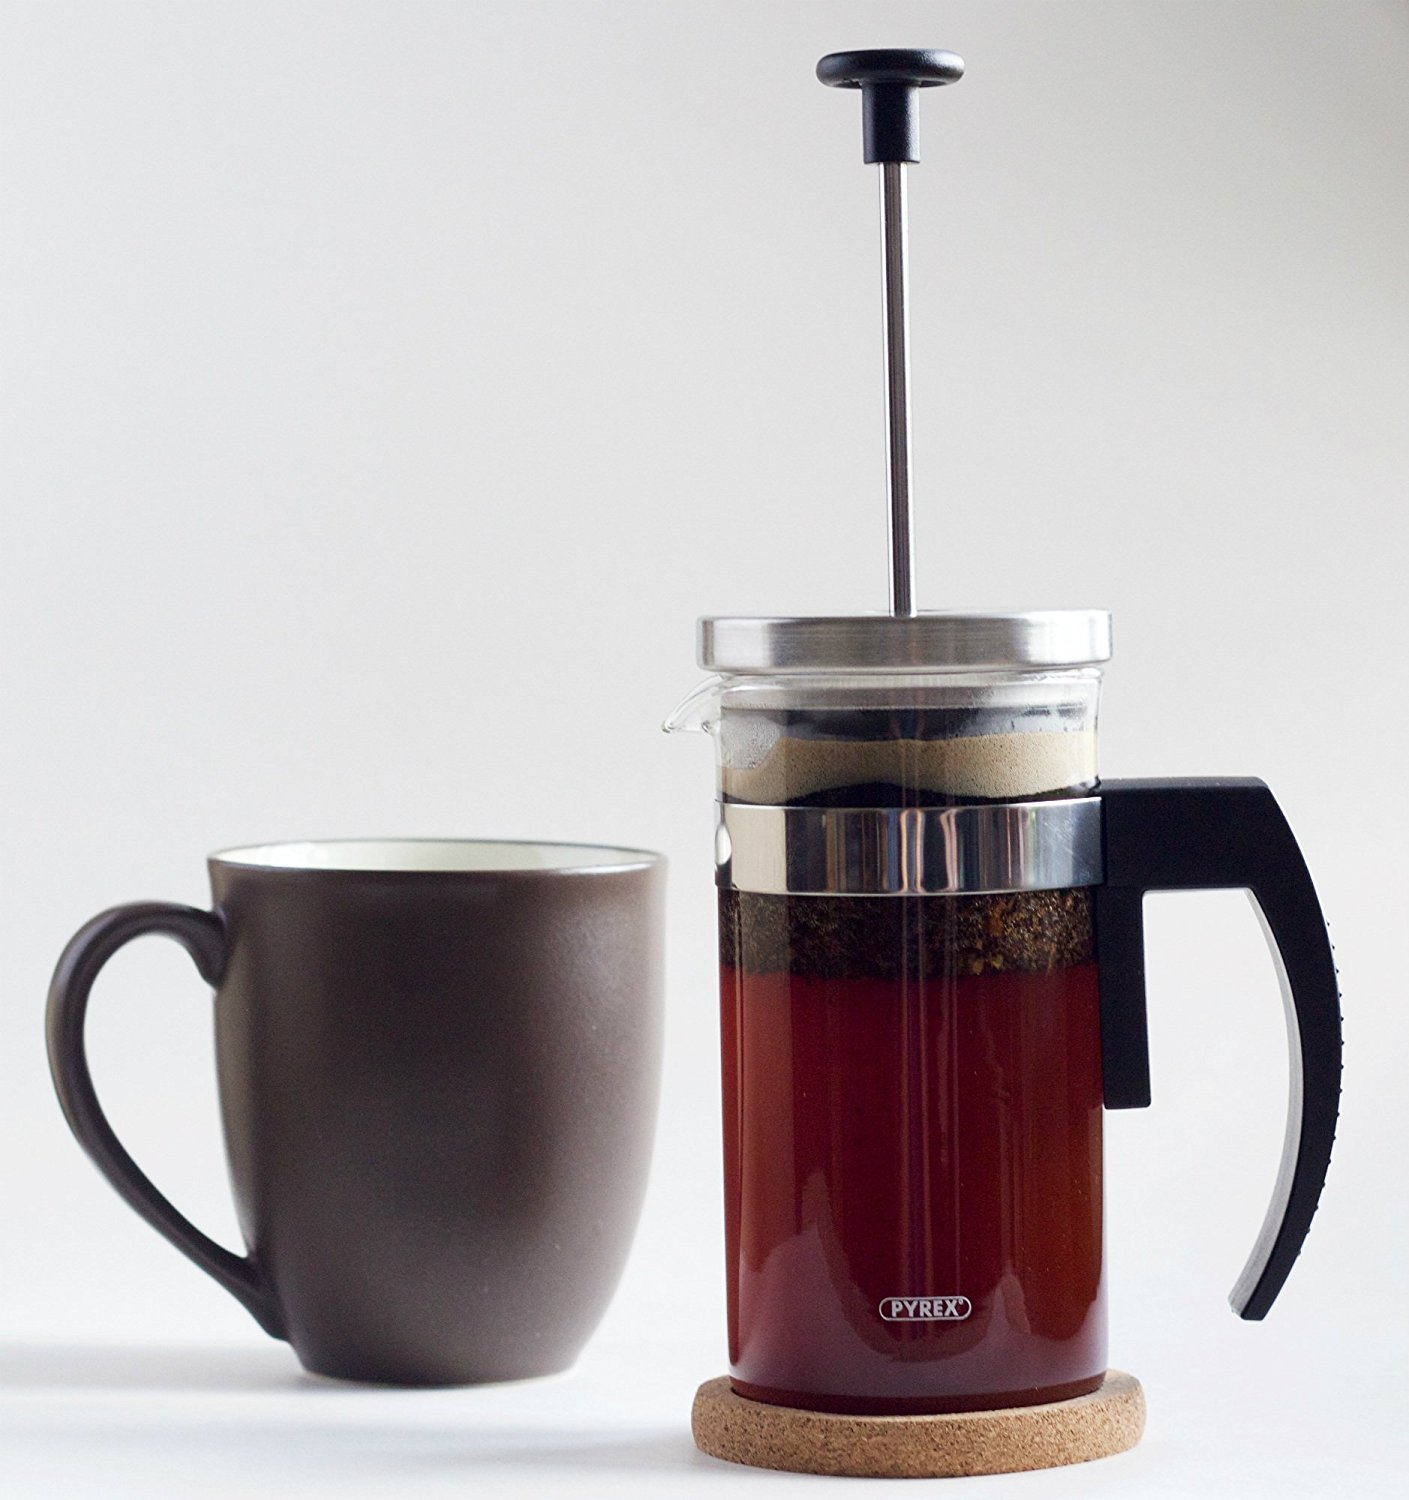 Single Serve Coffee Makers Not Made In China : Cool Tools of Doom: Briliante Single-Serve French Press Coffee Maker [20% OFF SolidSmack ...